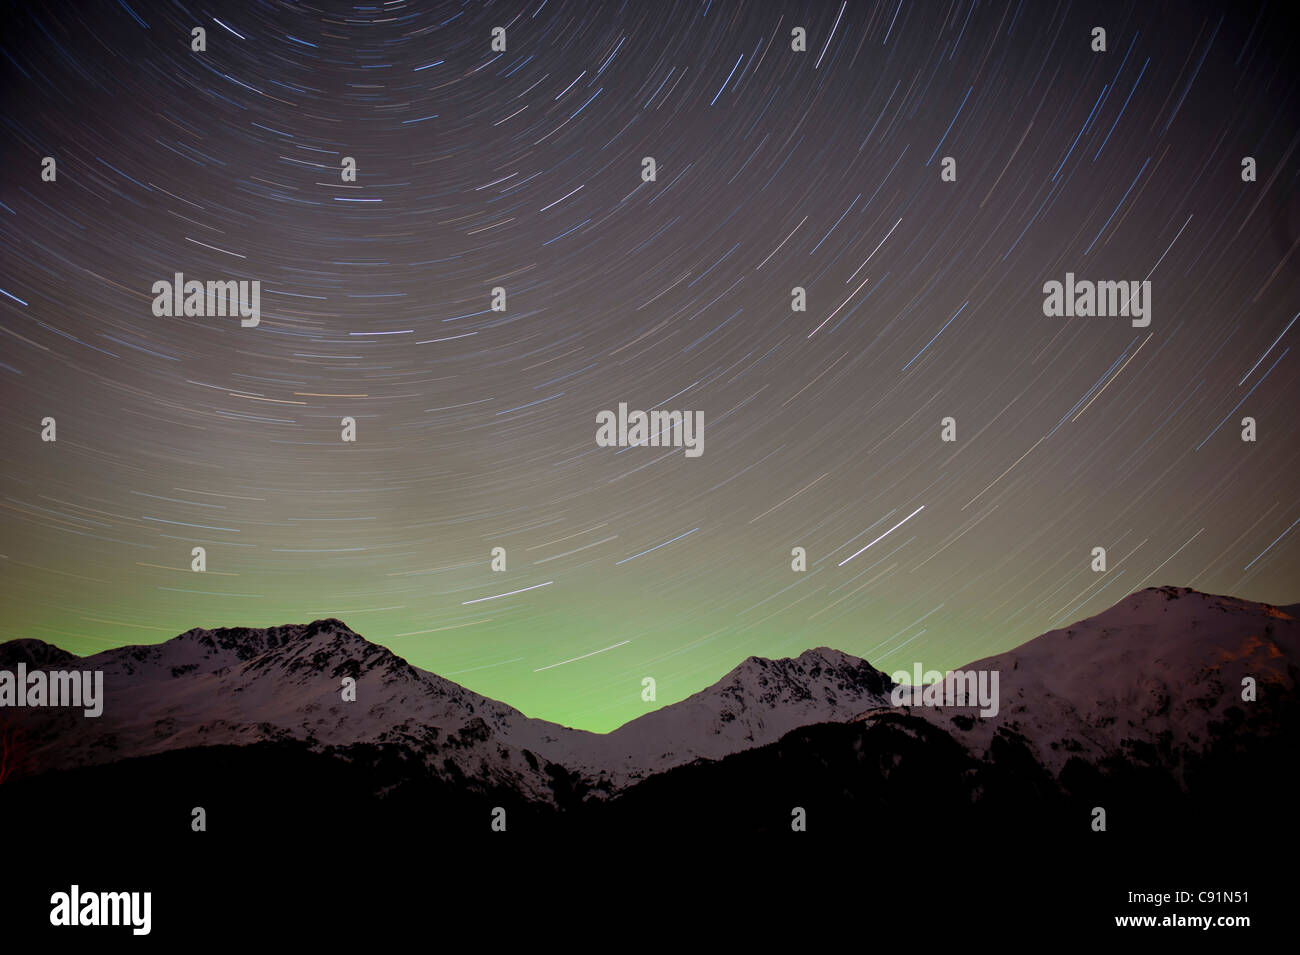 time elapse view of the night sky and star trails over the Chugach Mountains, Portage Valley, Southcentral Alaska, - Stock Image